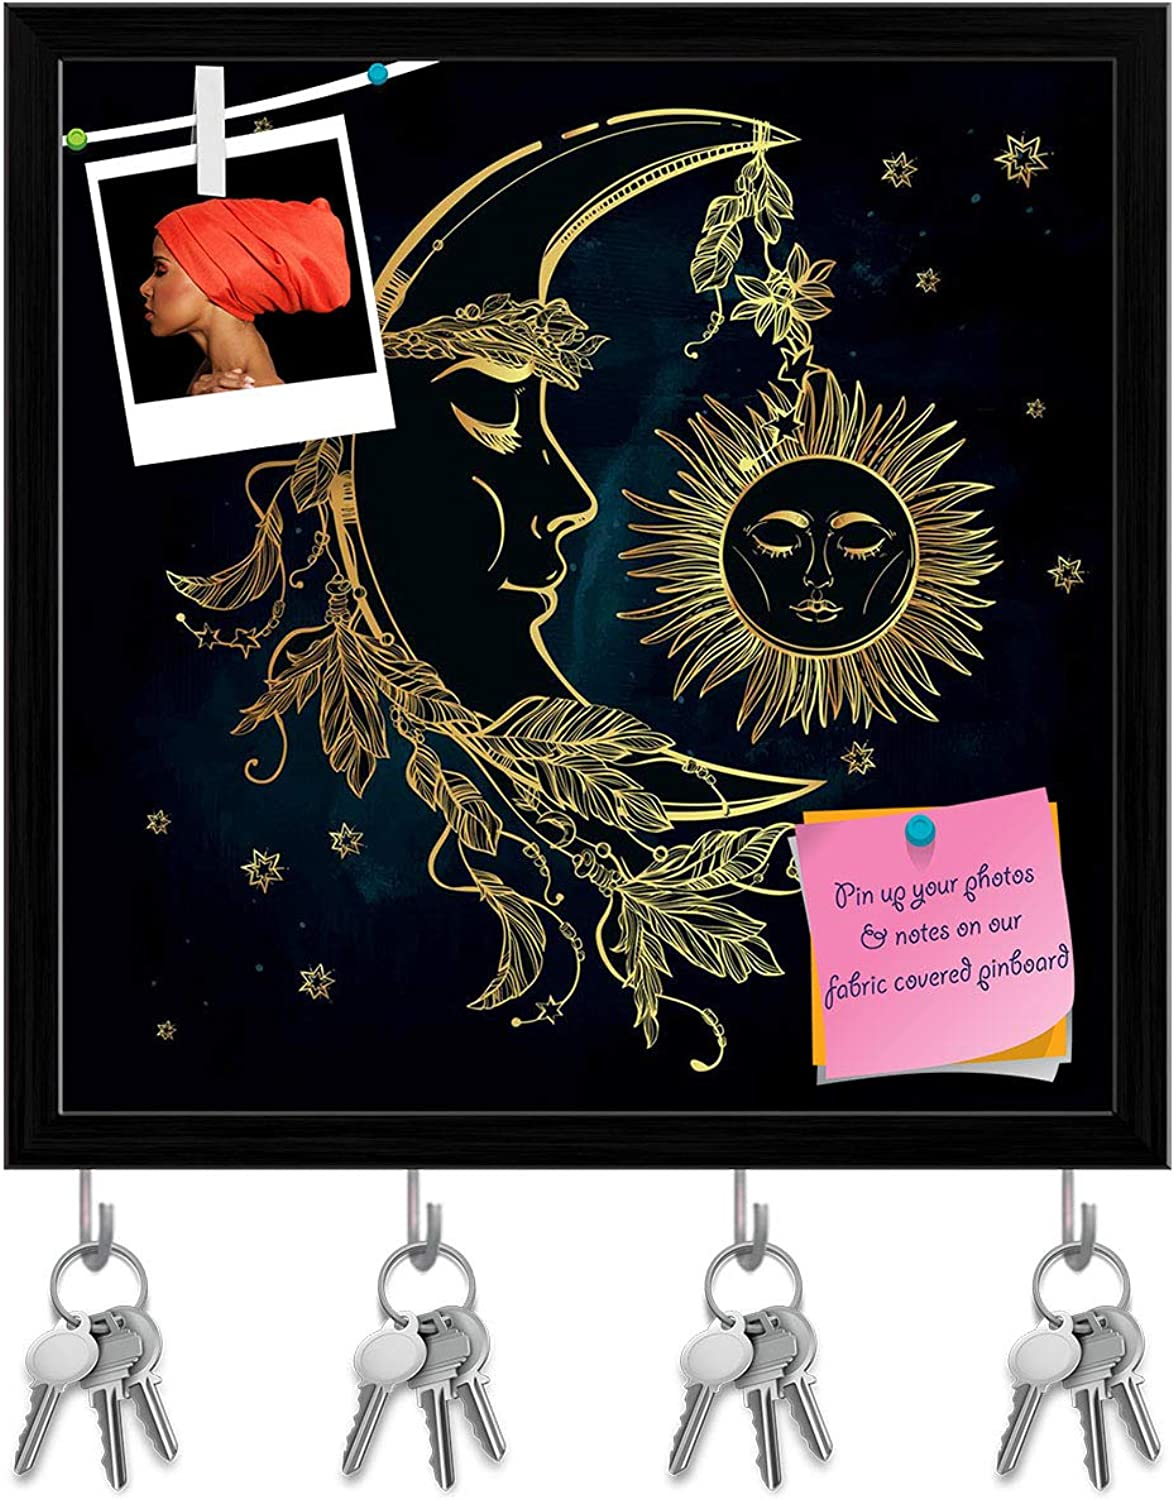 Artzfolio Crescent Moon with Feathers Key Holder Hooks   Notice Pin Board   Black Frame 20 X 20Inch